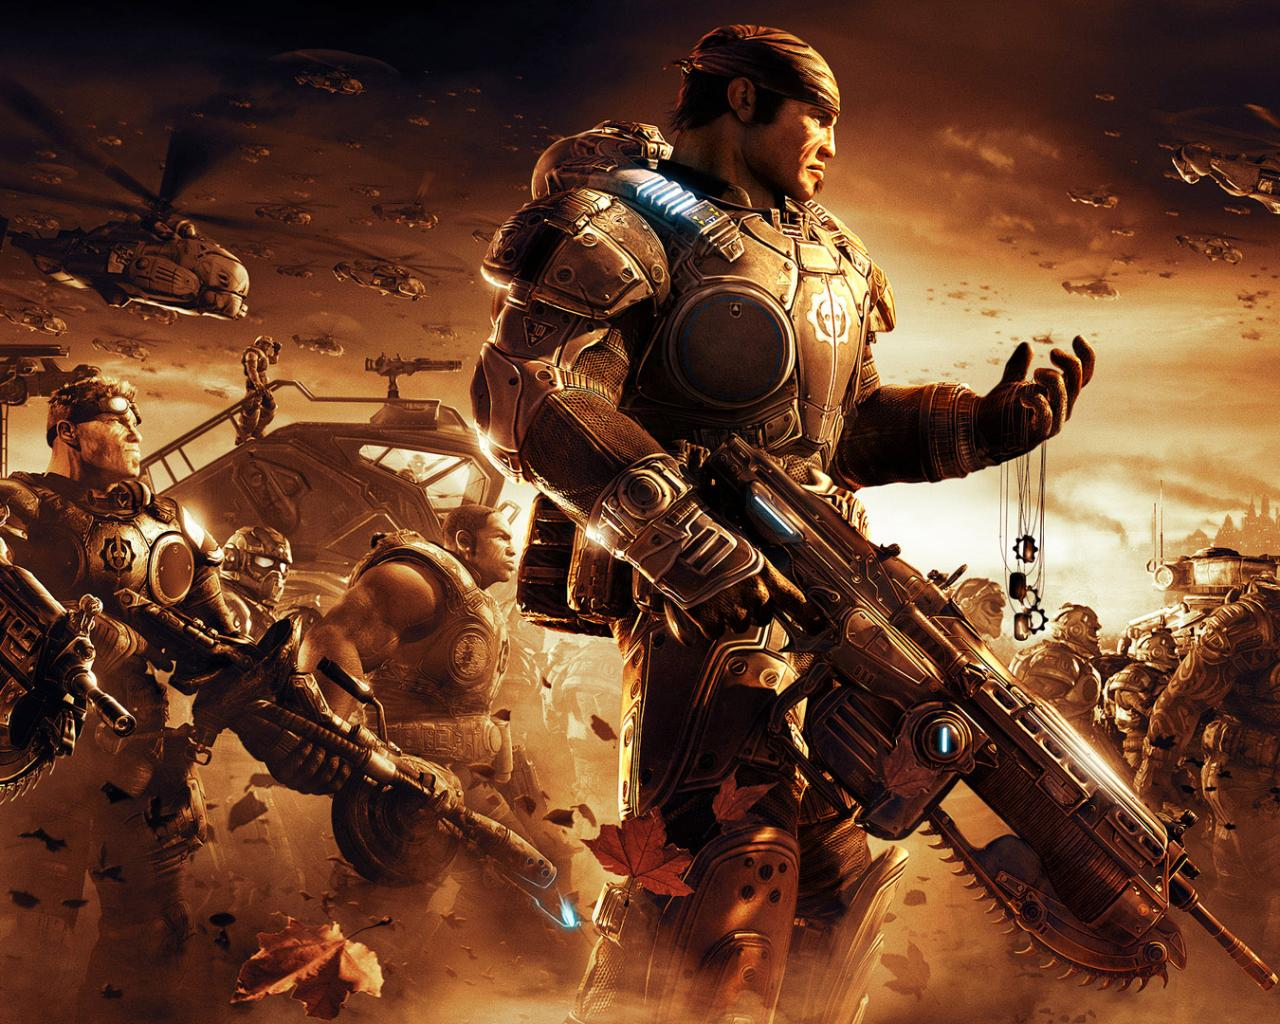 Армия солдат из игры gears of war 3 обои для